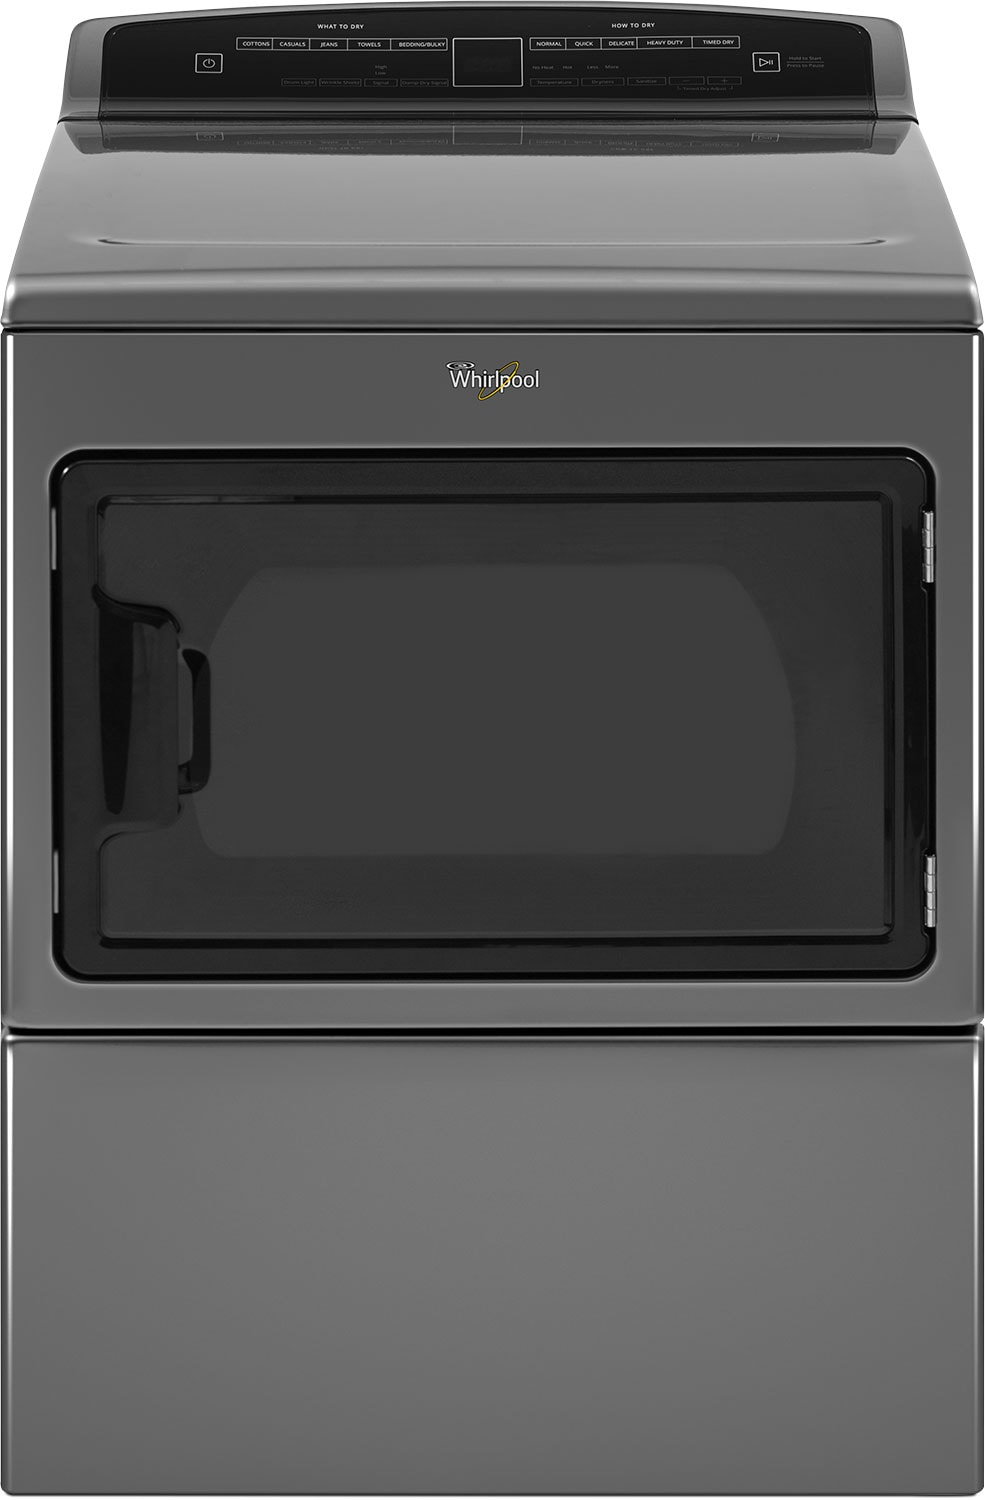 Whirlpool 7.4 Cu. Ft. Large Capacity Electric Dryer – YWED7500GC